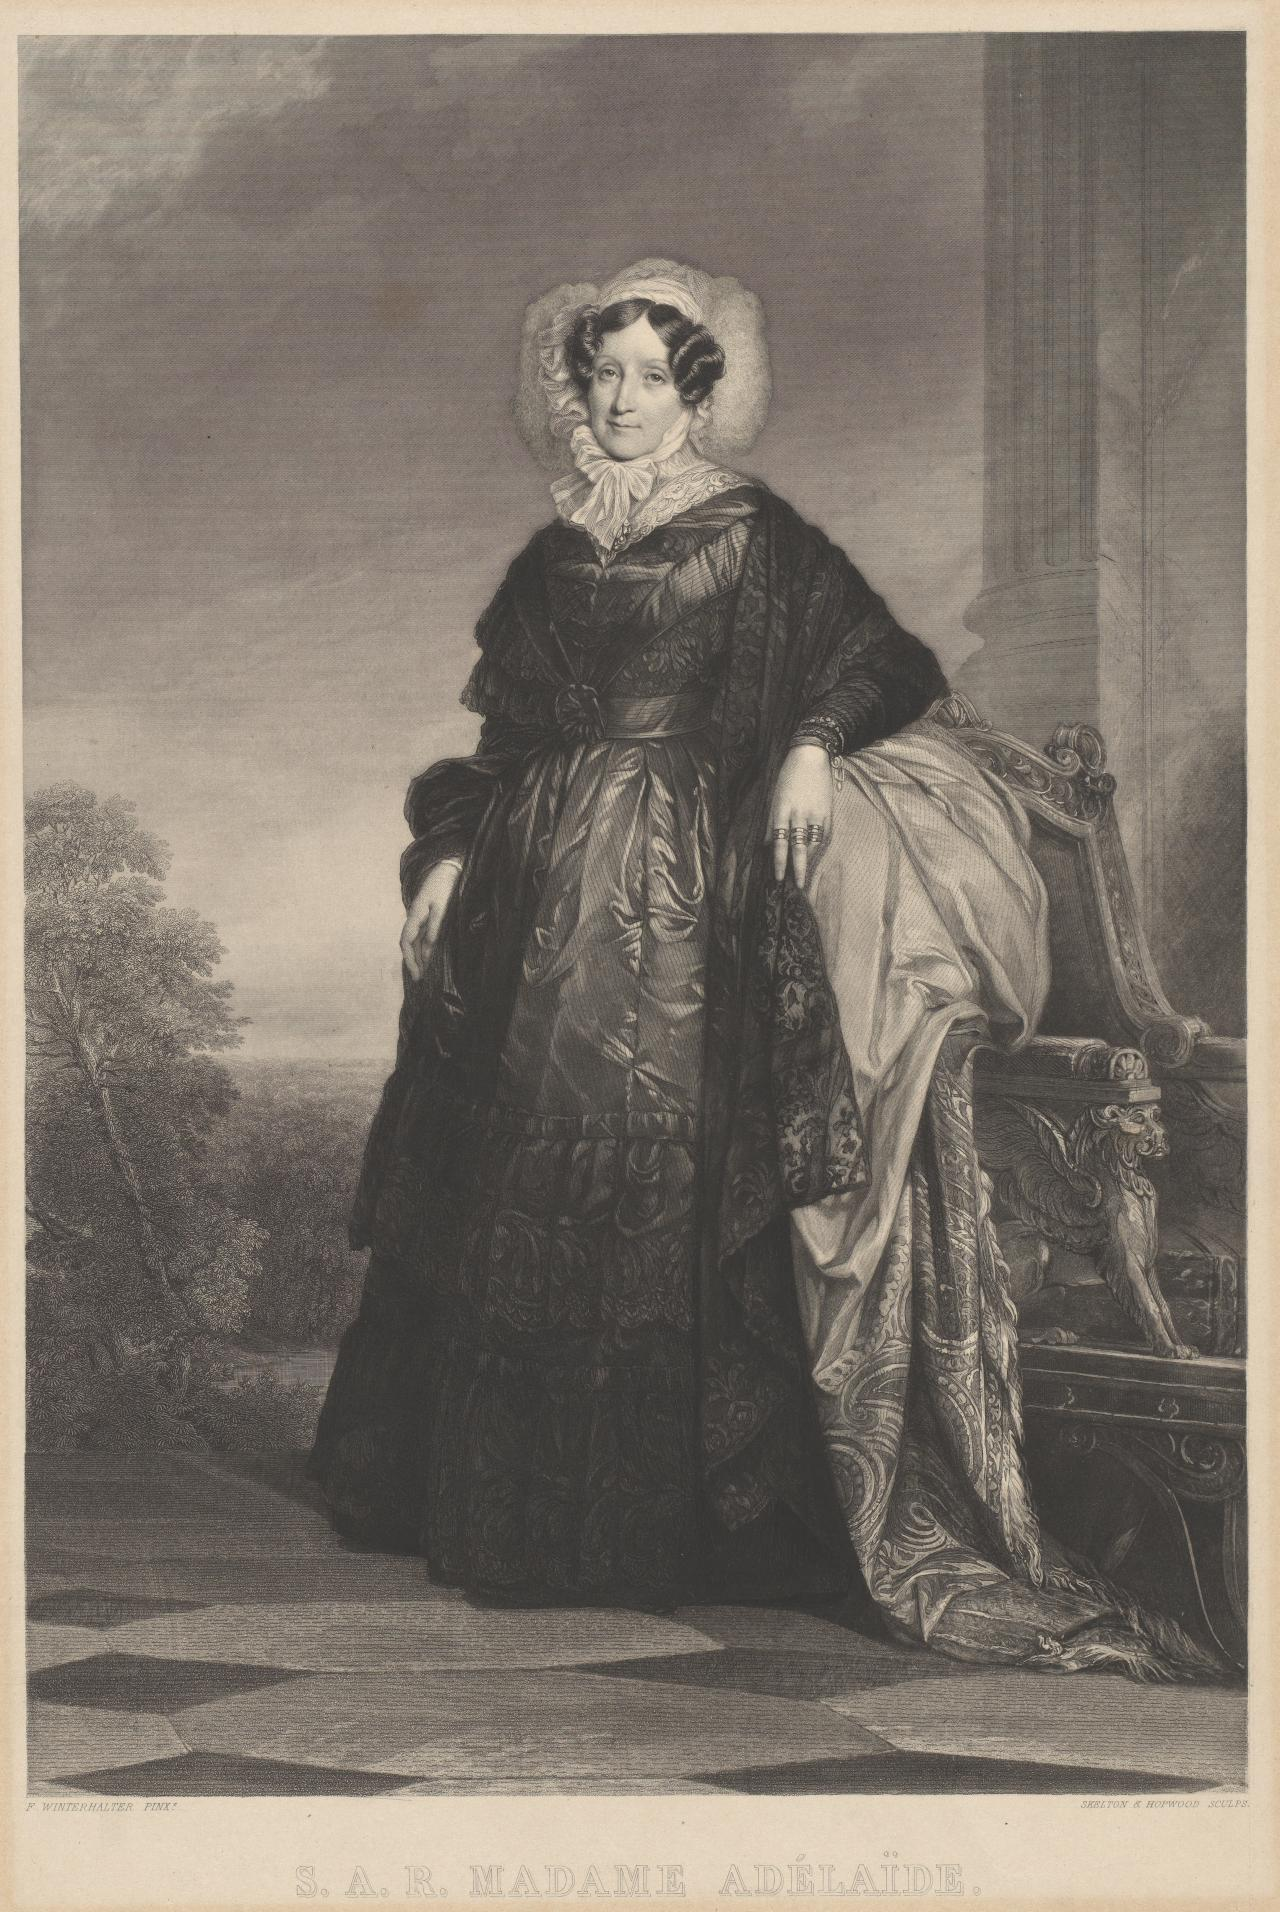 S.A.R. Madame Adelaide